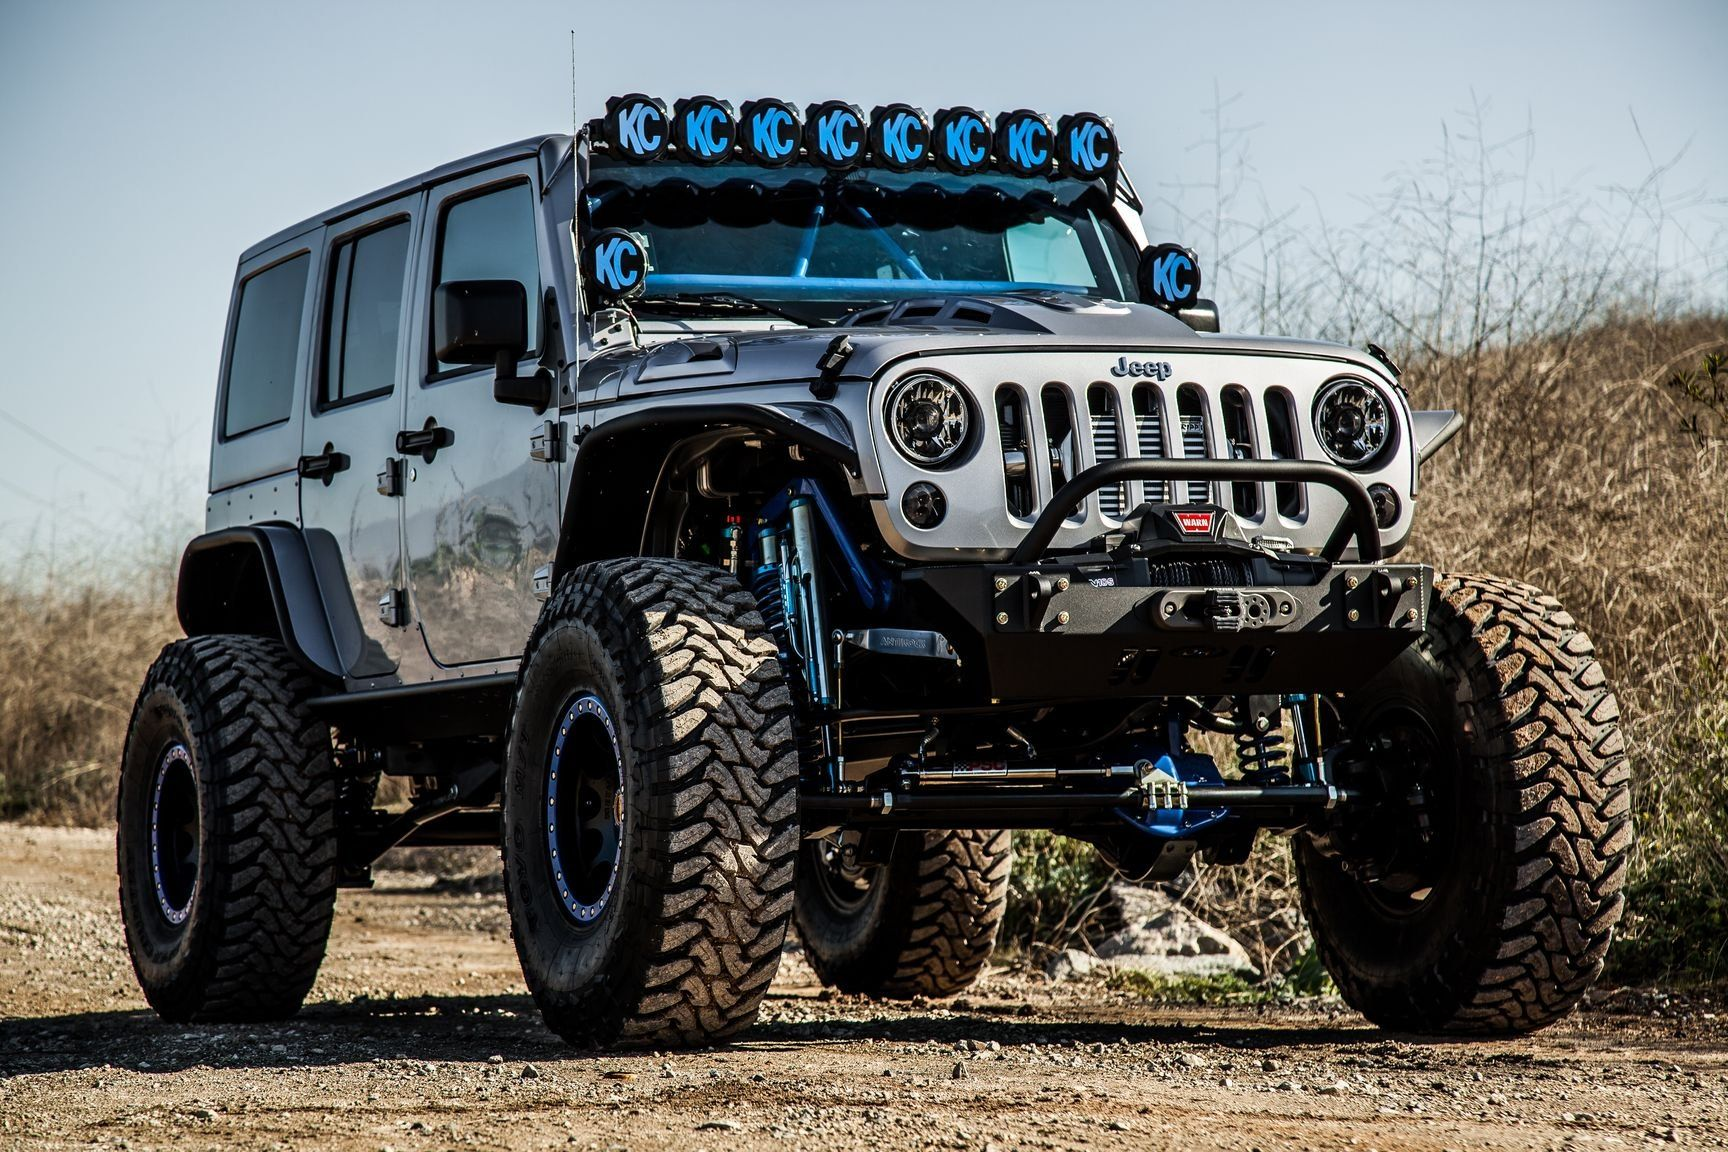 Kchilites Off Road Lights Looking Amazing On Gray Lifted Jeep Wrangler Lifted Jeep Lifted Jeep Wrangler Jeep Wrangler